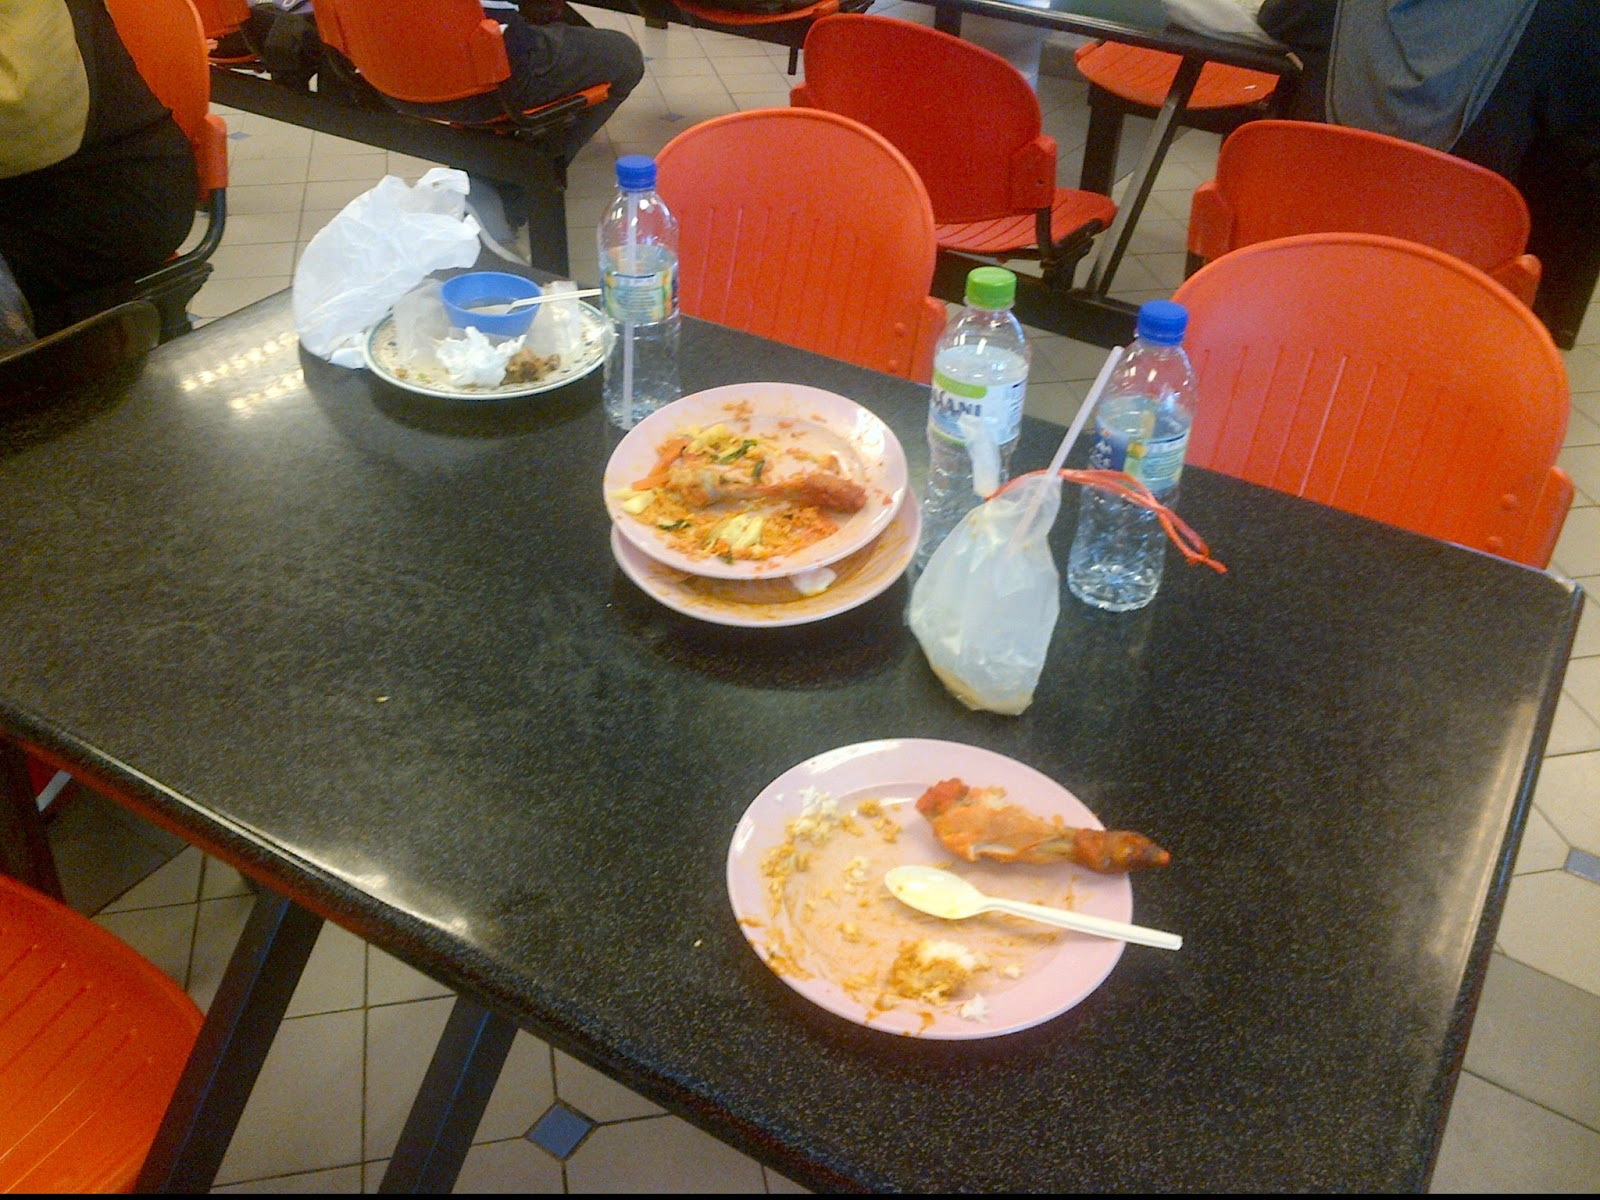 the school canteen dirty The recent nationwide crackdown on dirty restaurants and eateries should also be extended to school canteens and college cafeterias.